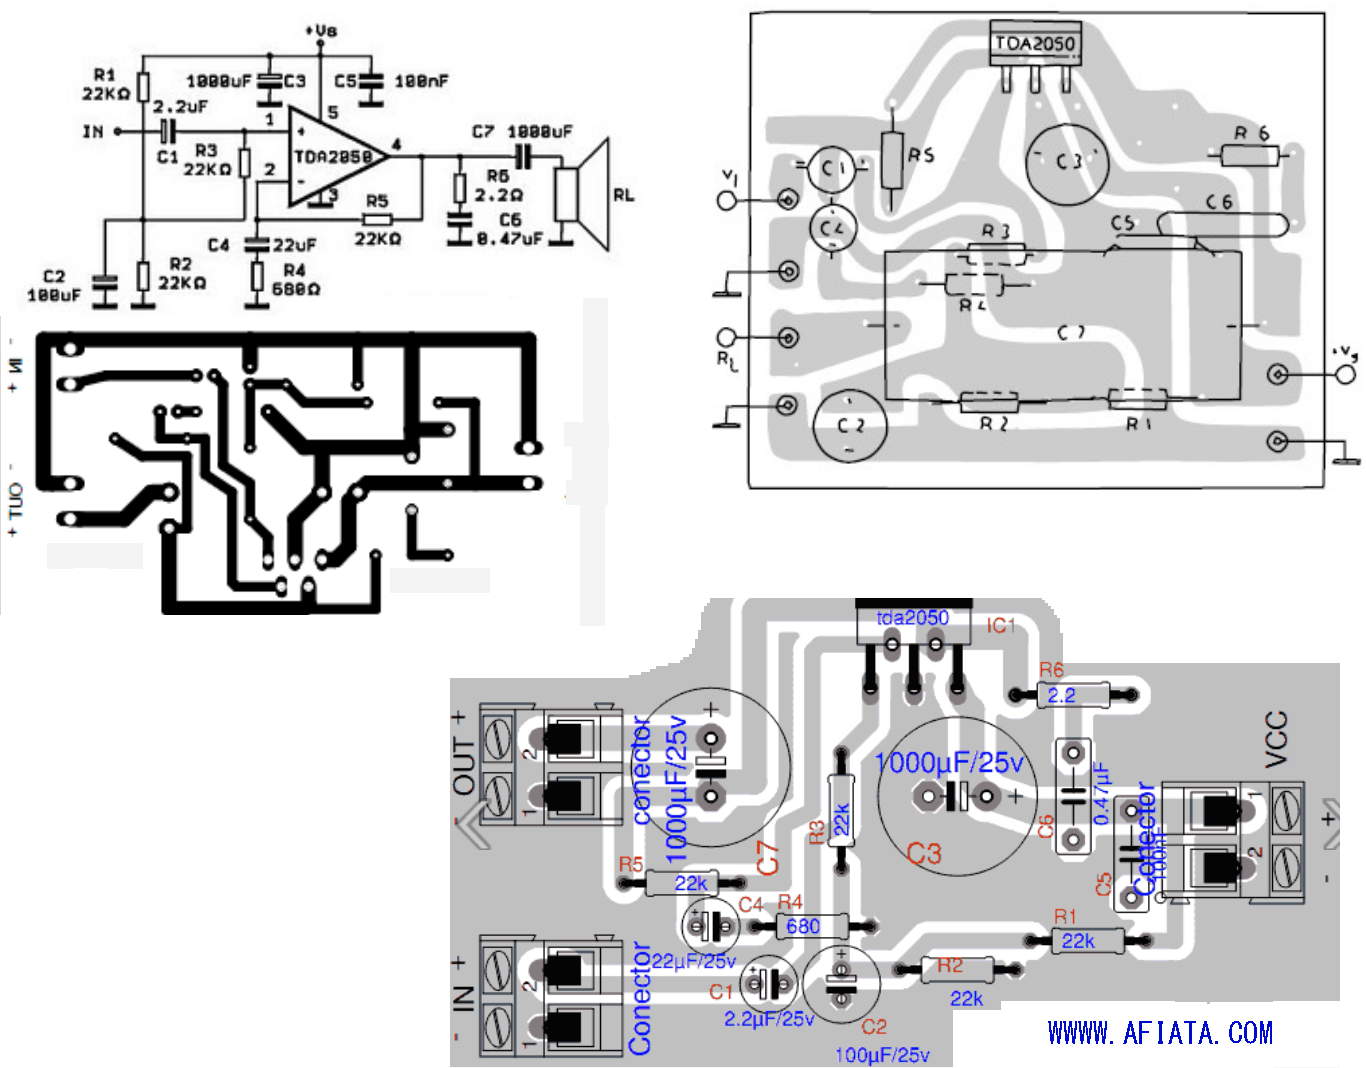 25 Watt Power Amplifier Using Tda2009 Tda2050 Layout And Circuit Diagram Electroncs Pinterest